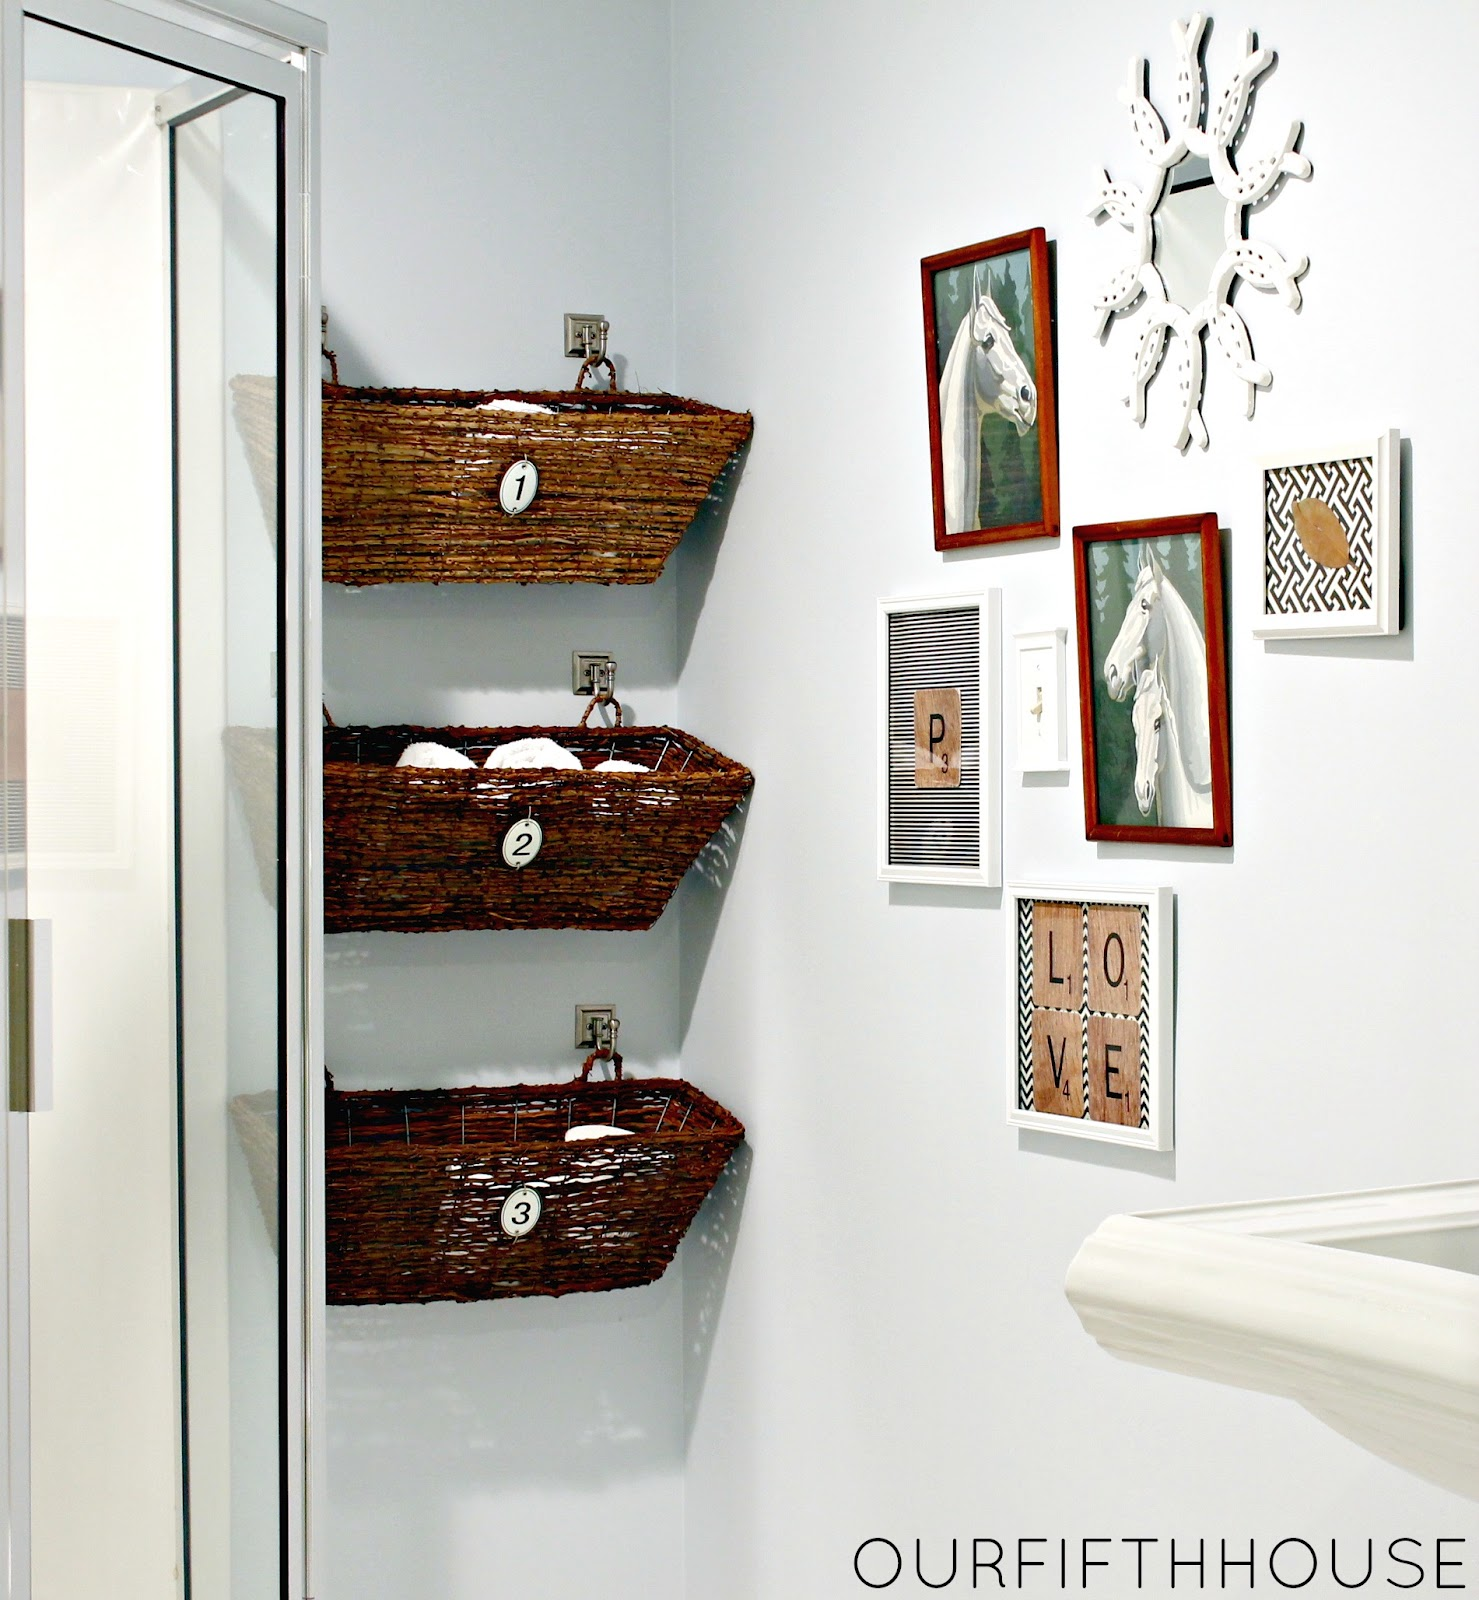 Bathroom Storage 12 small bathroom storage ideas - wall storage solutons and